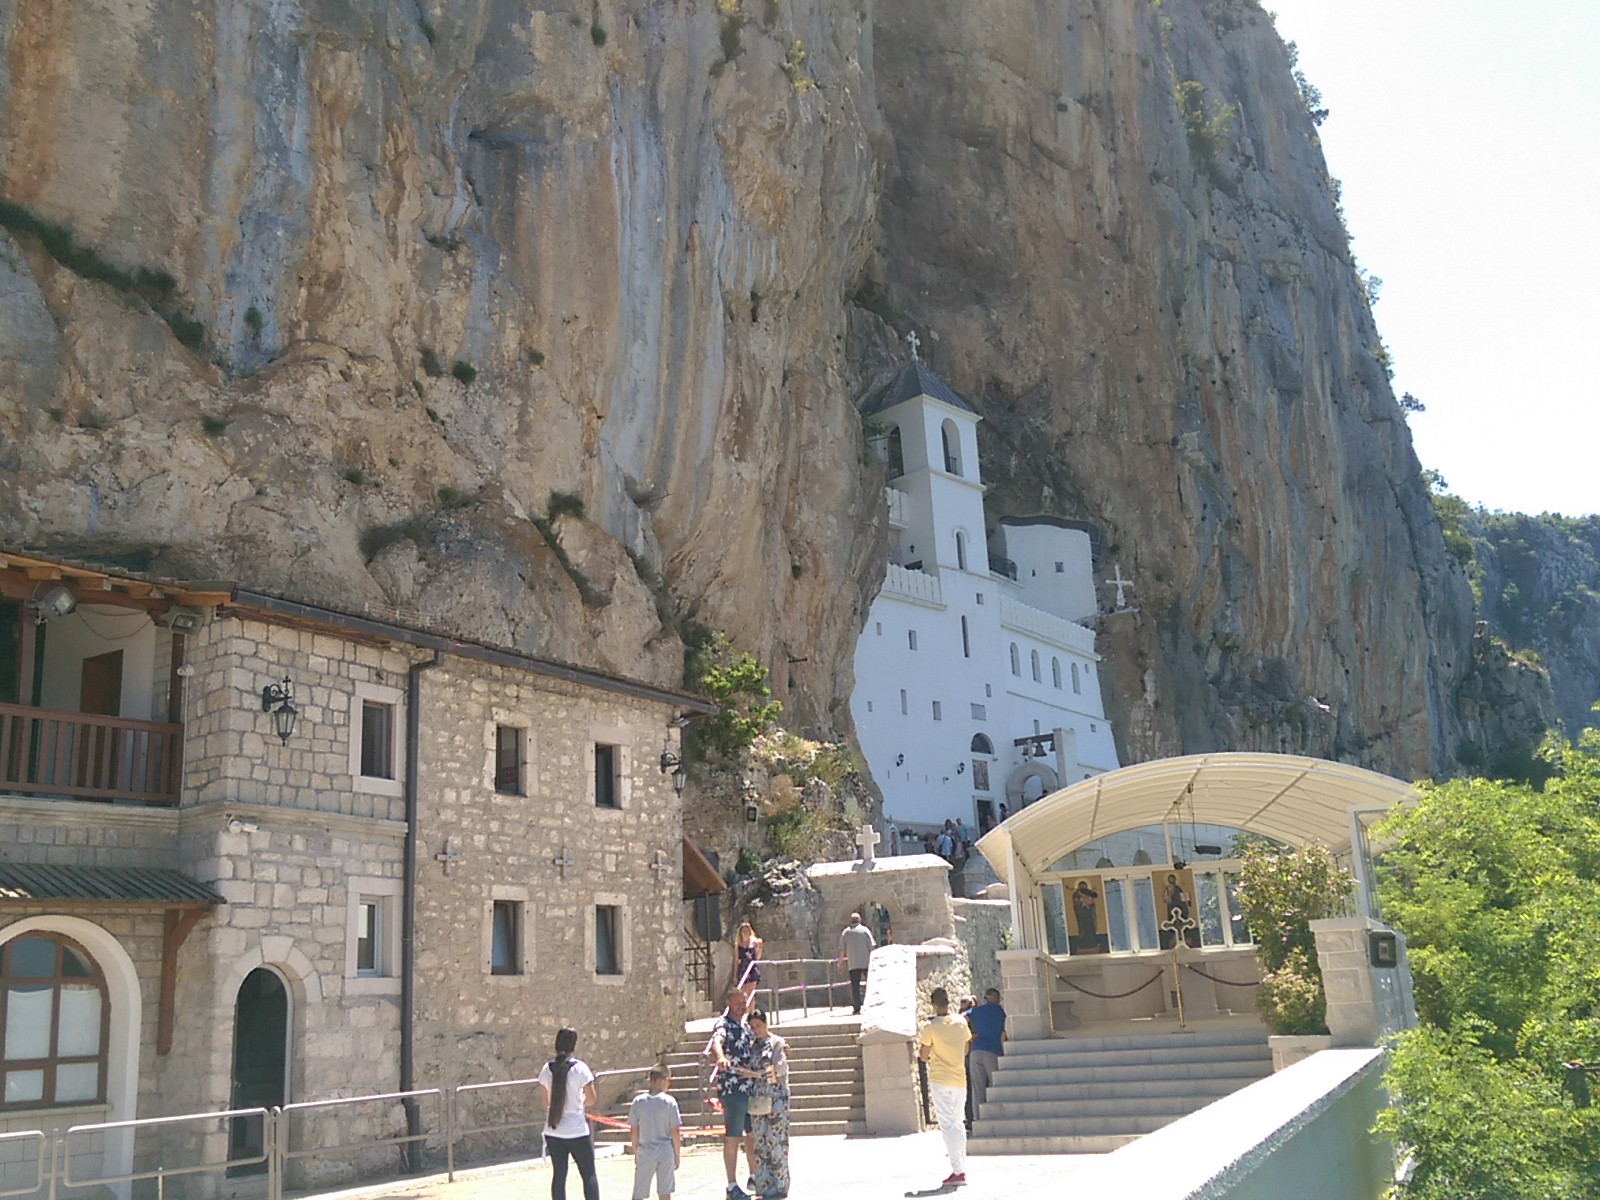 A vertical cliff face with buildings embedded in the side, and a courtyard with some tourists